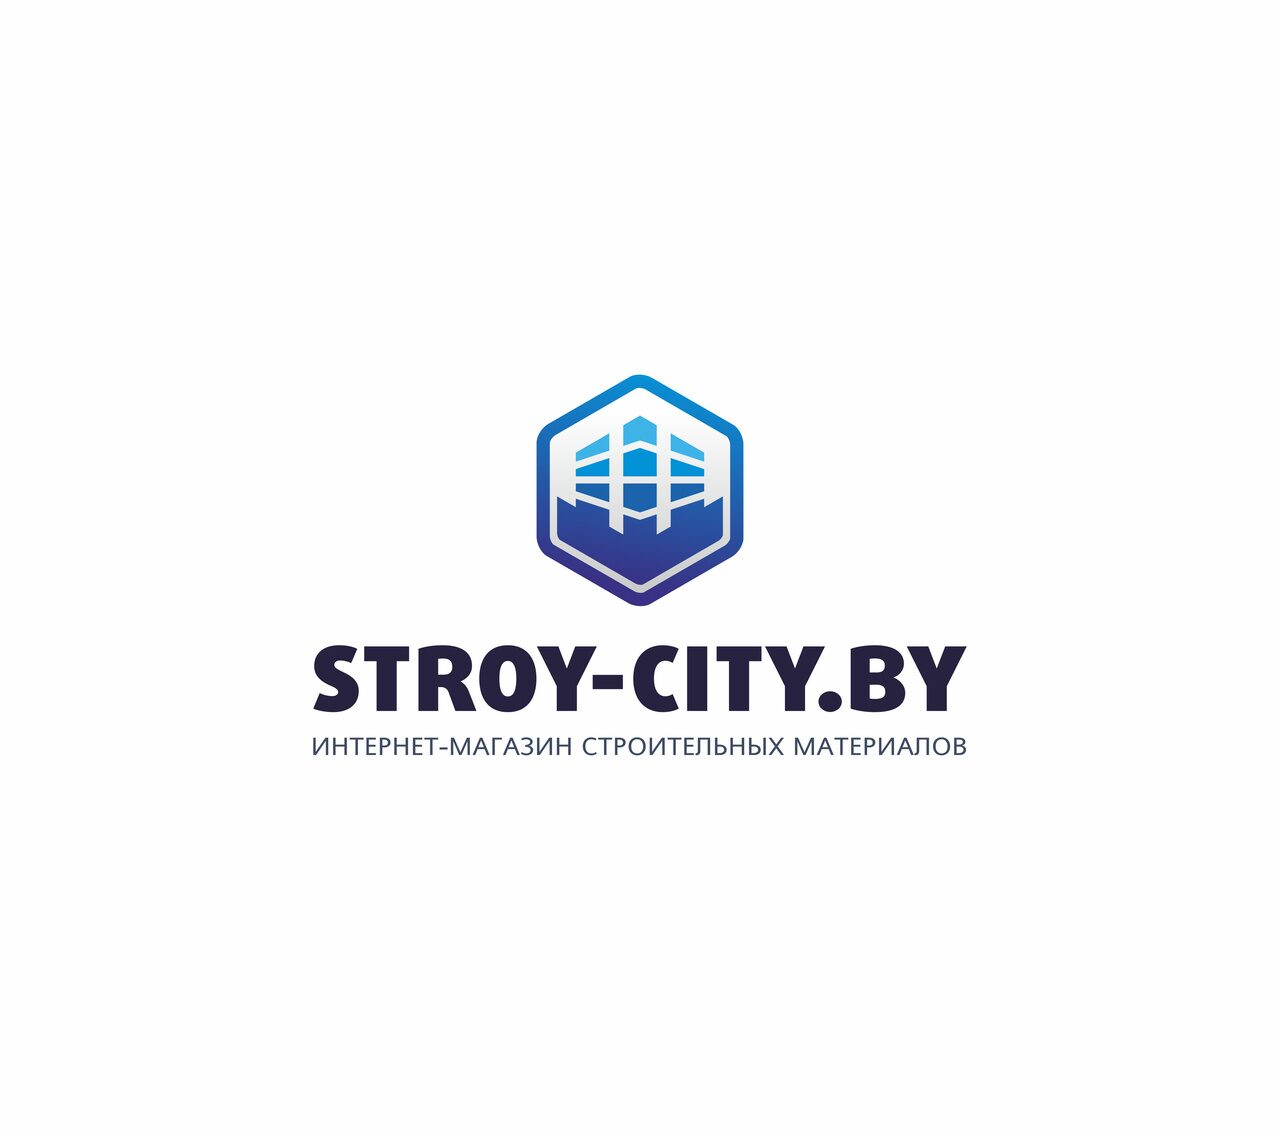 Stroy-City.by